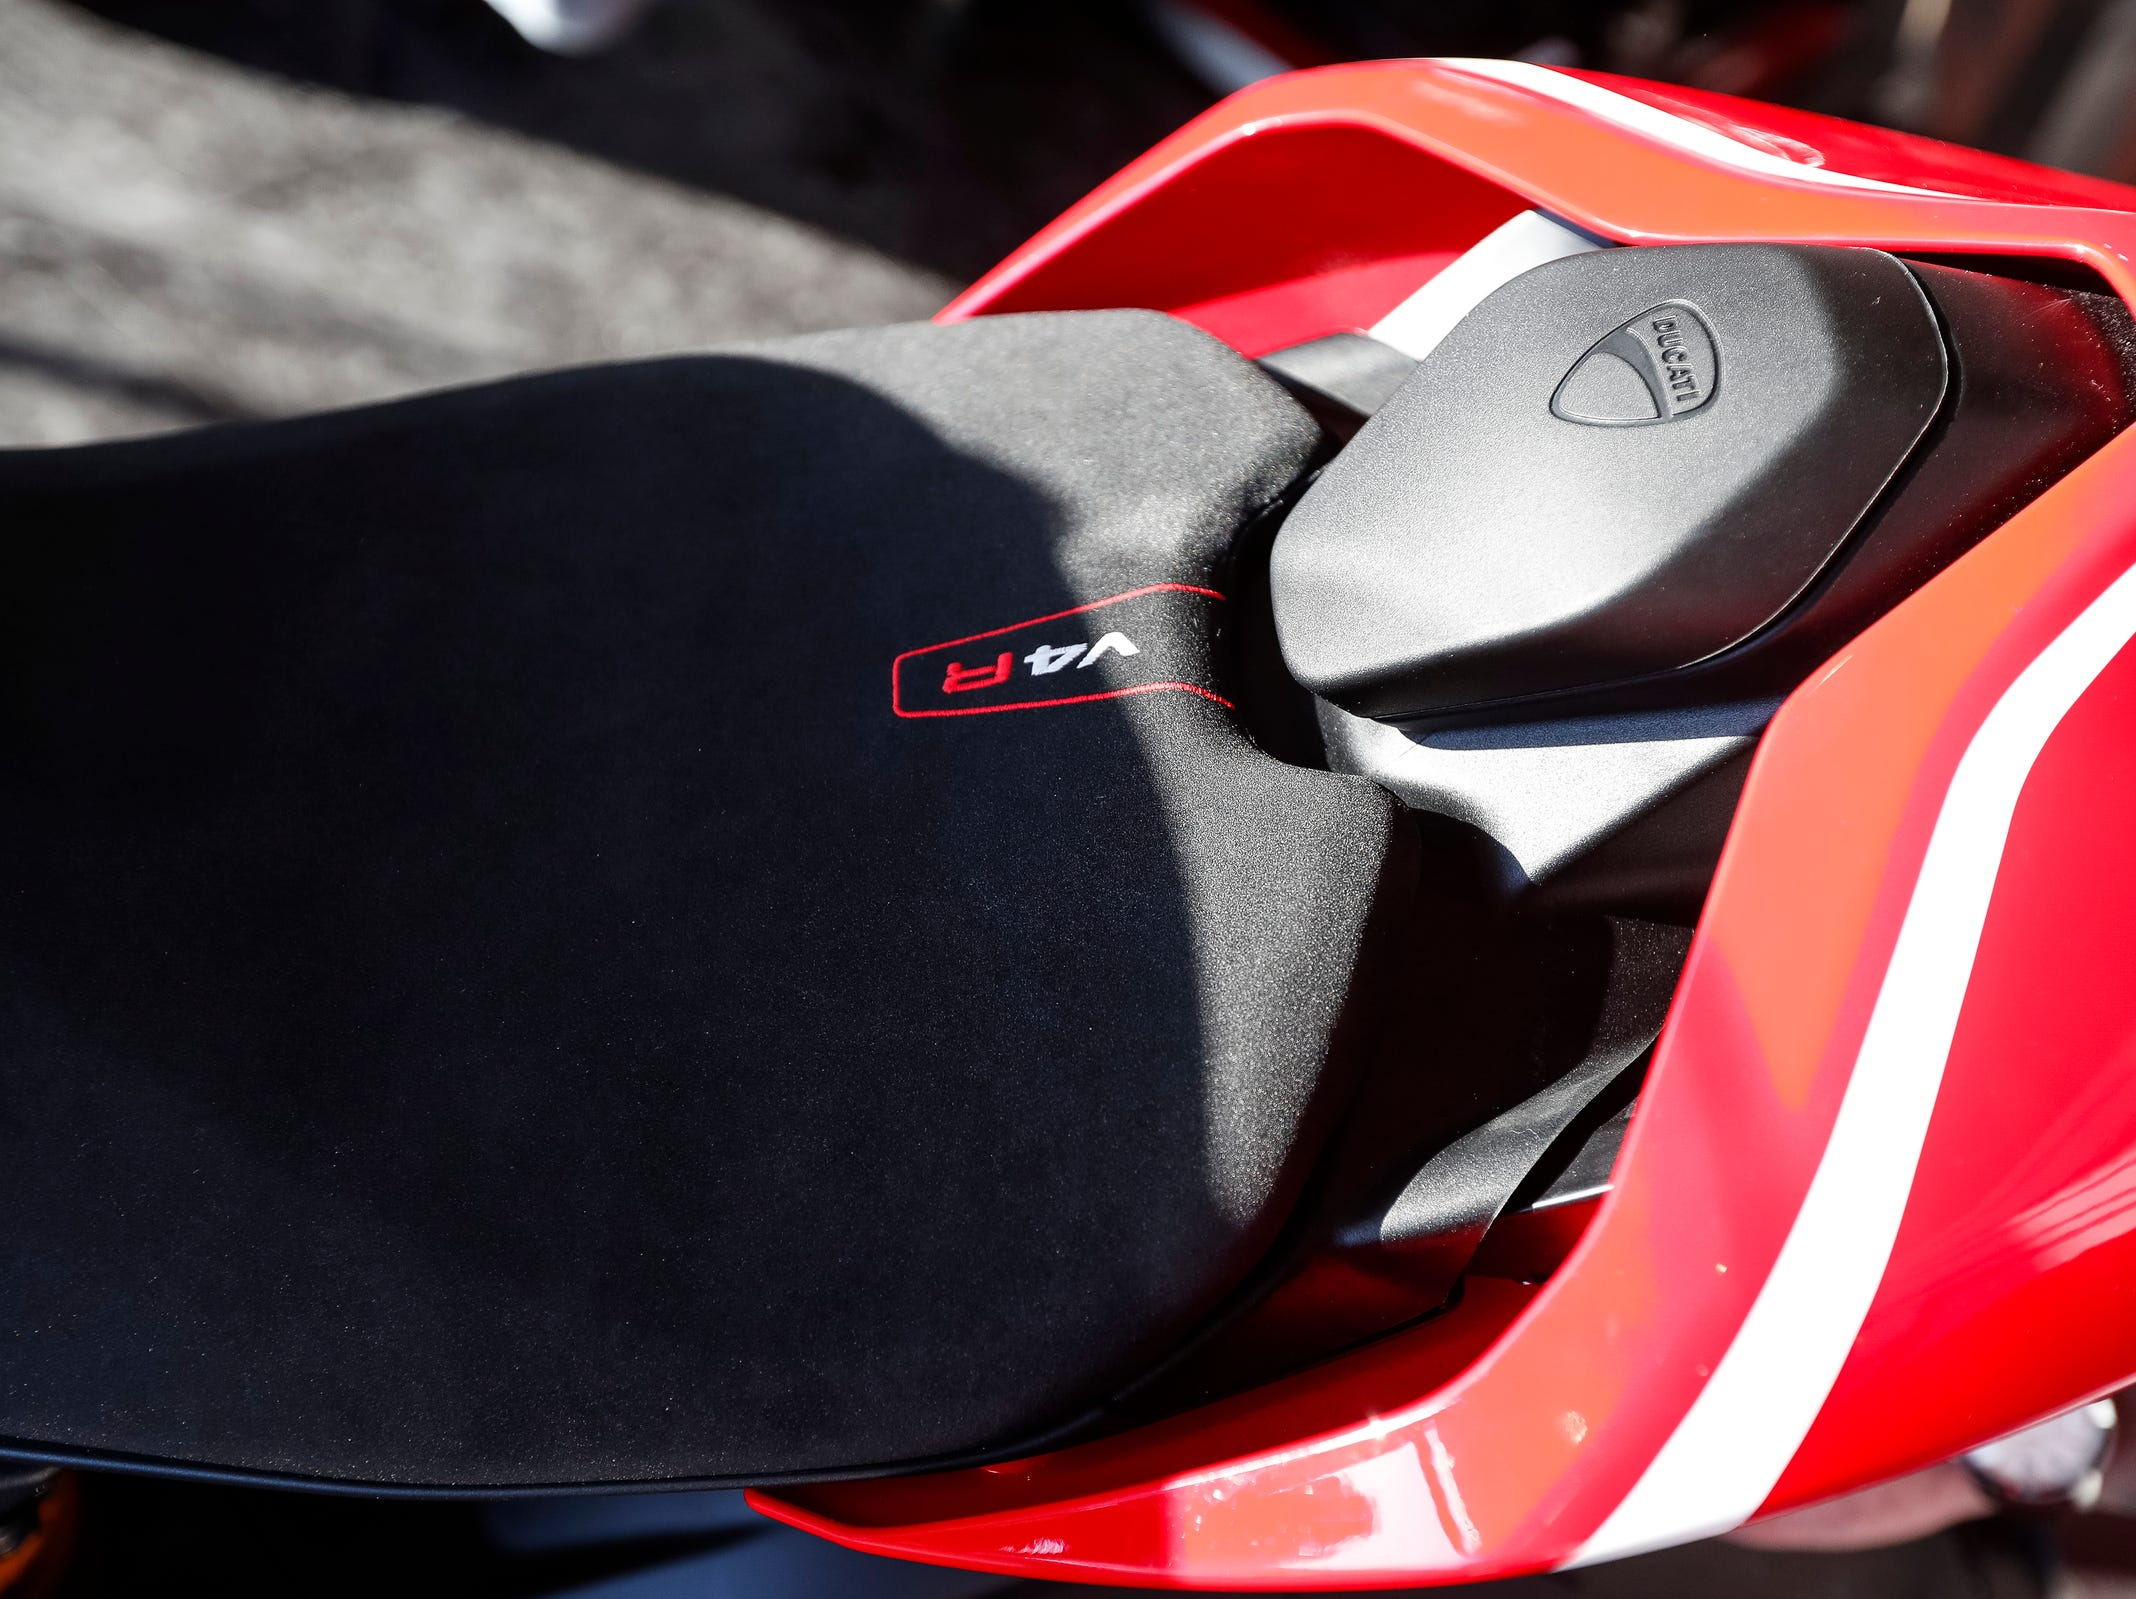 The seat of the Ducati 2019 Panigale V4 R.